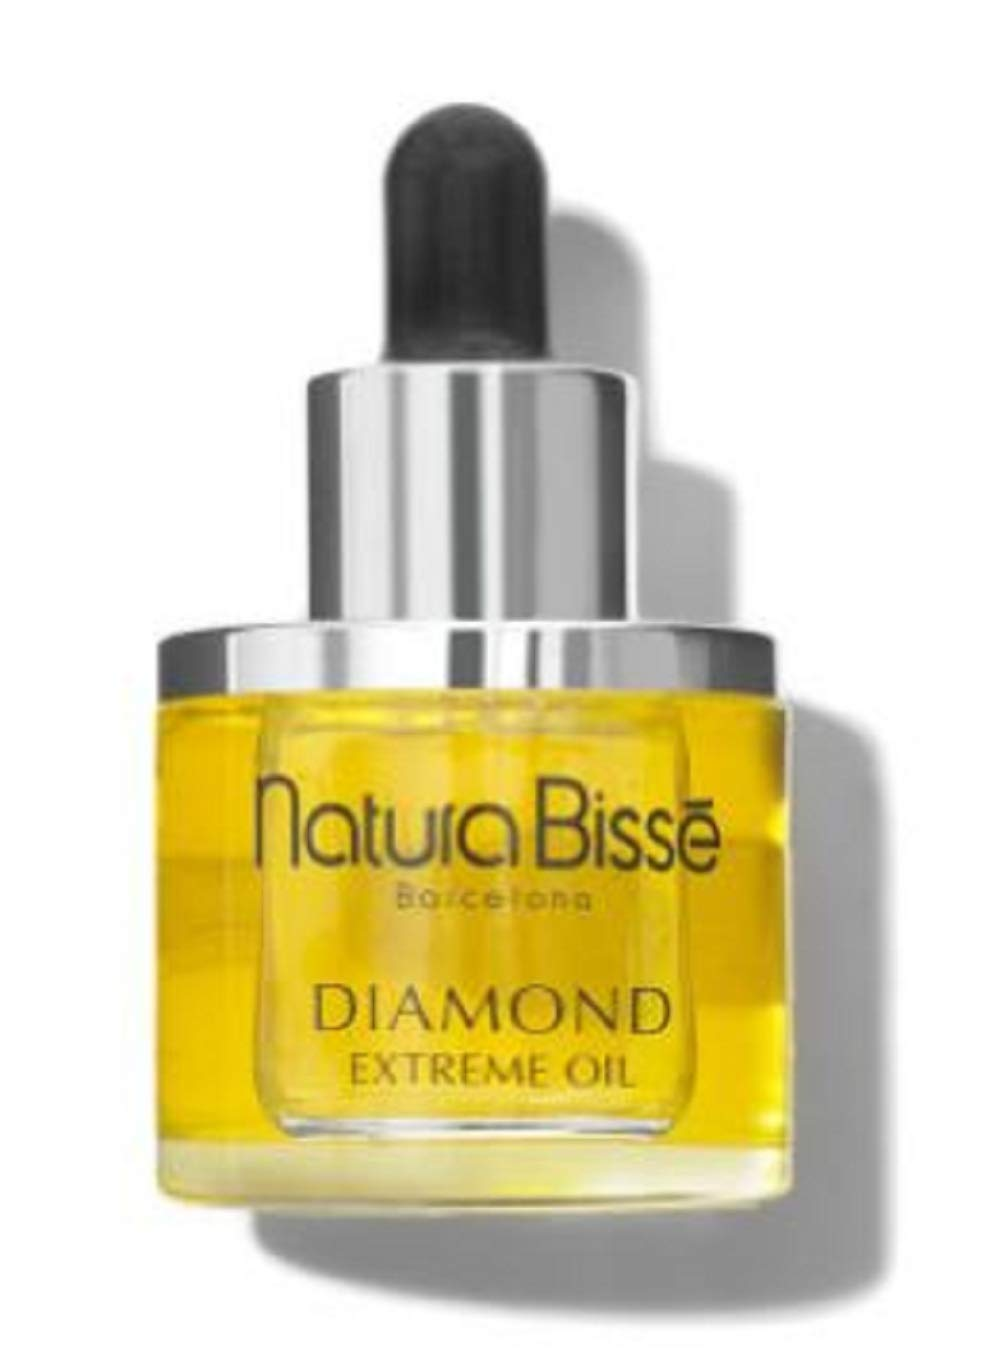 Exclusivo aceite de diamante de NATURA BISSÉX de 30 ml ...